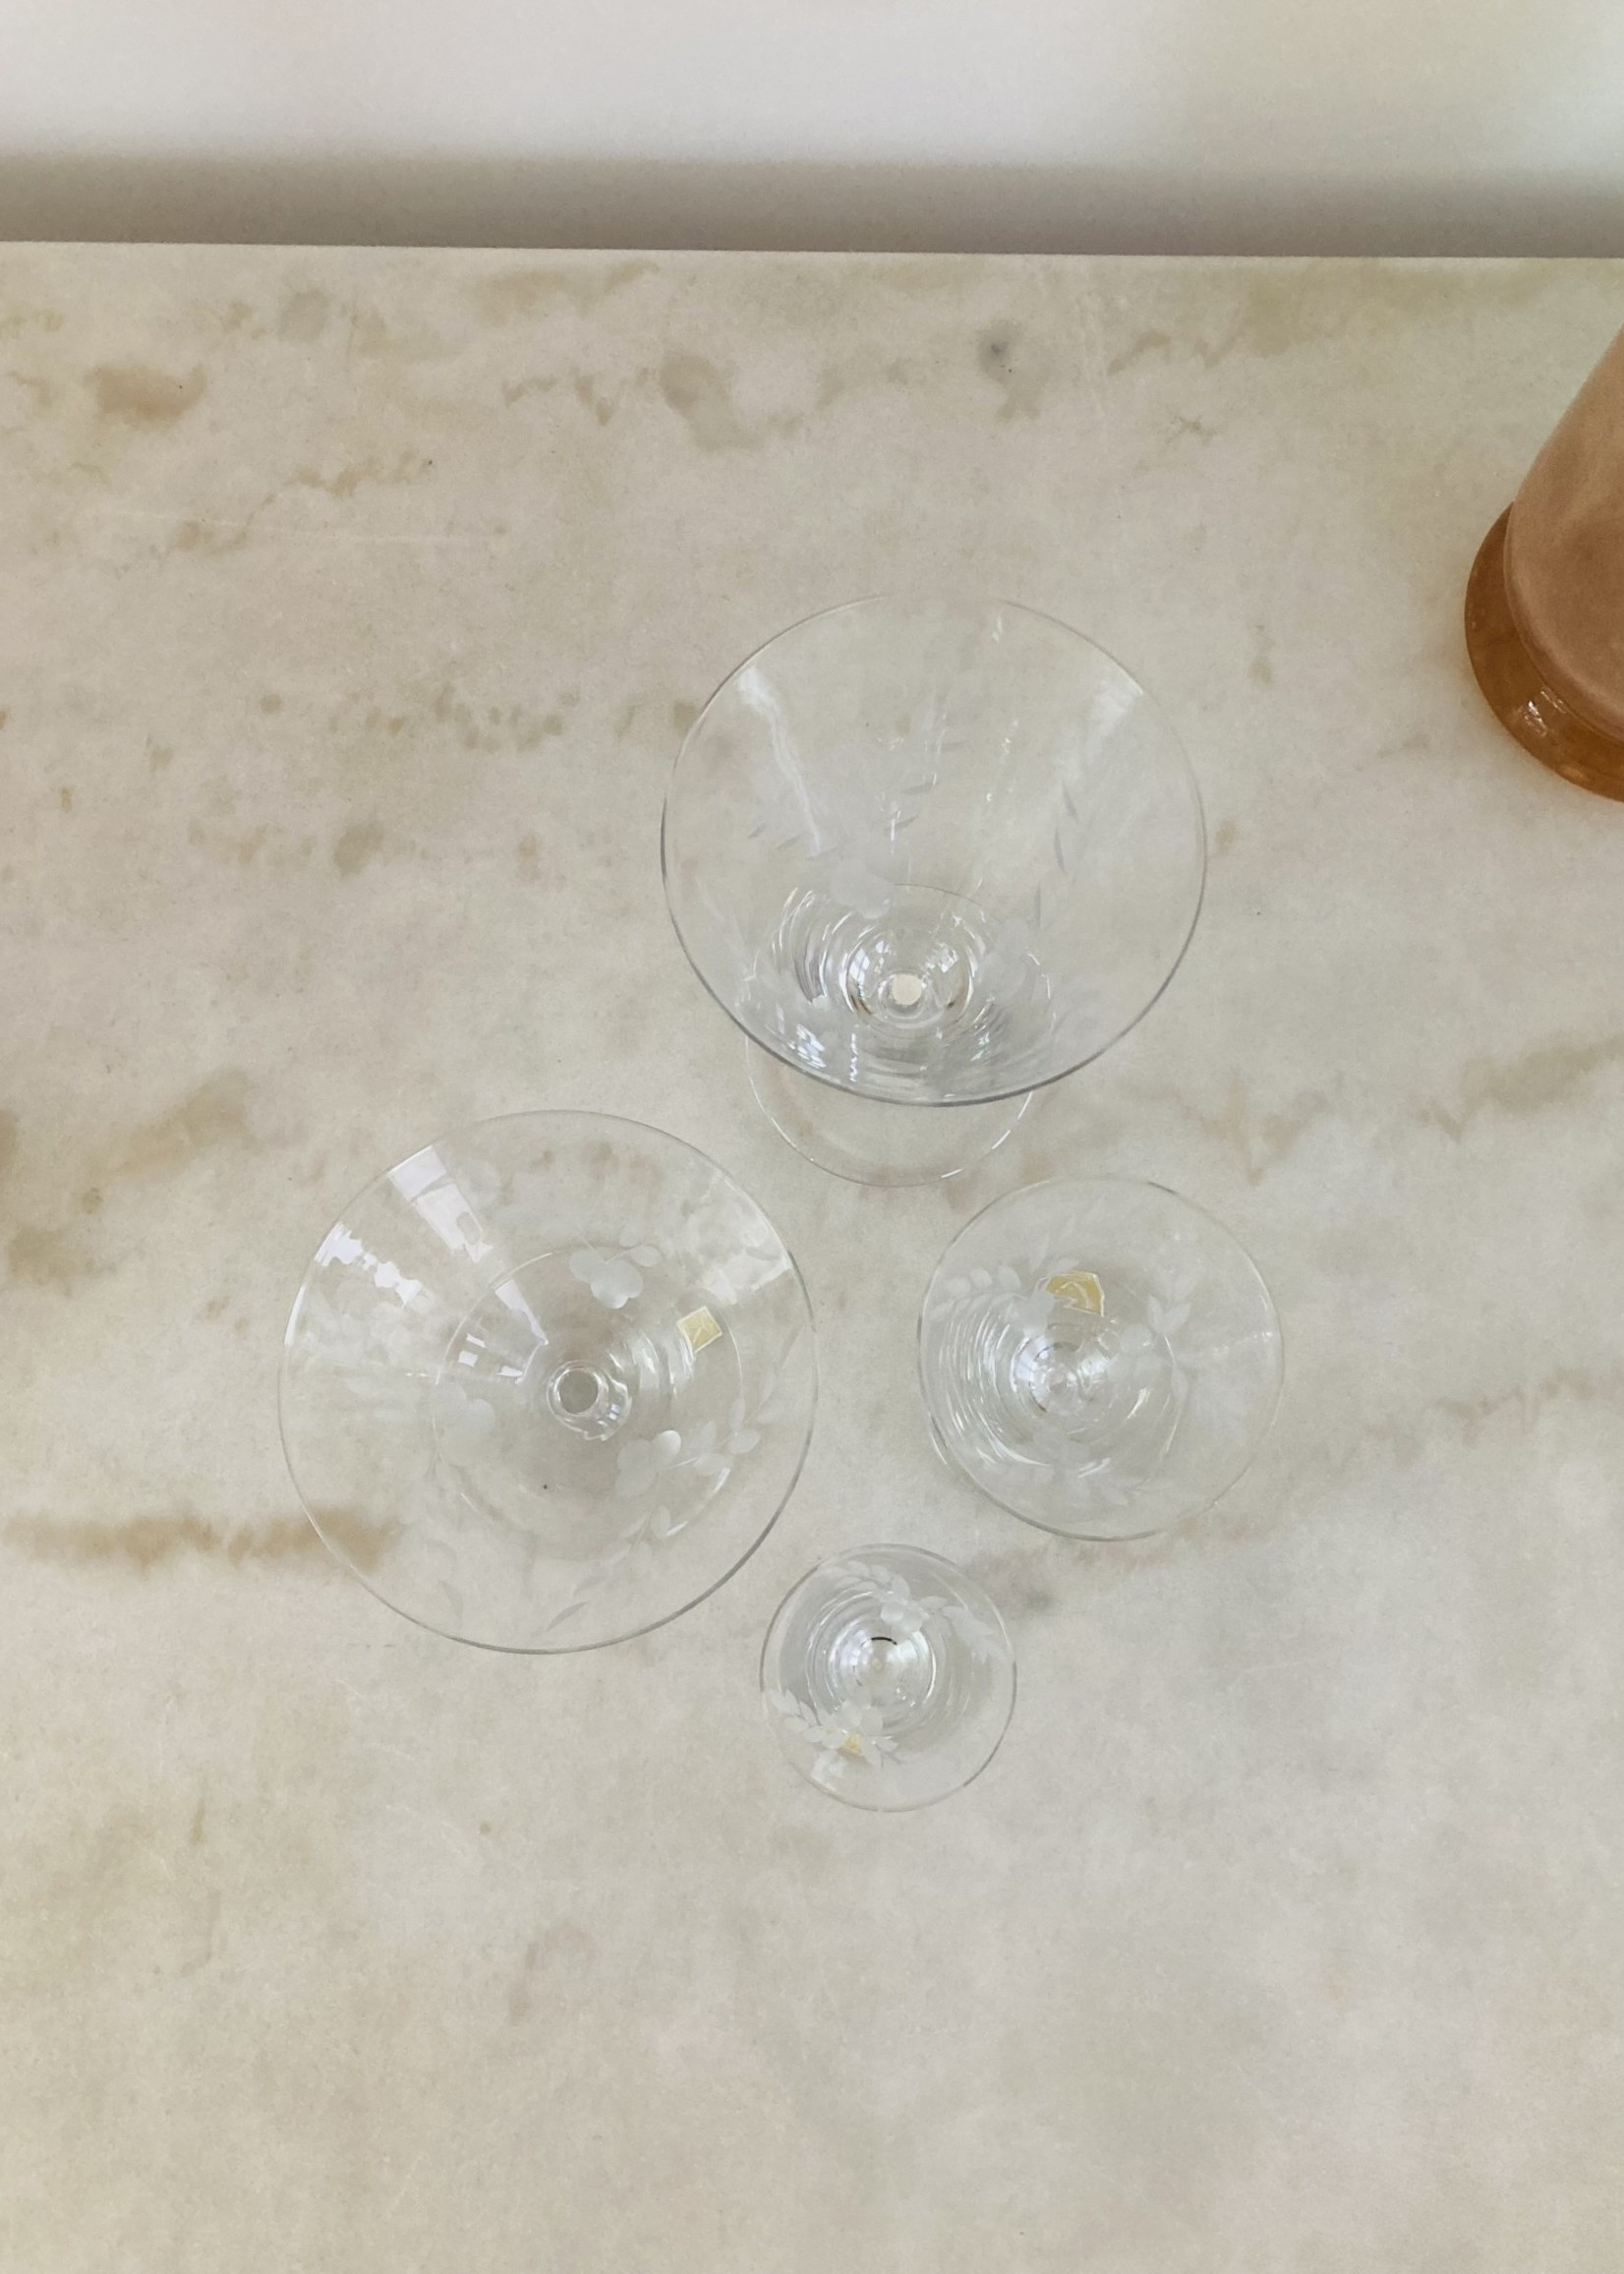 VB Carved crystal conic Champagne coupes from VB Boussu